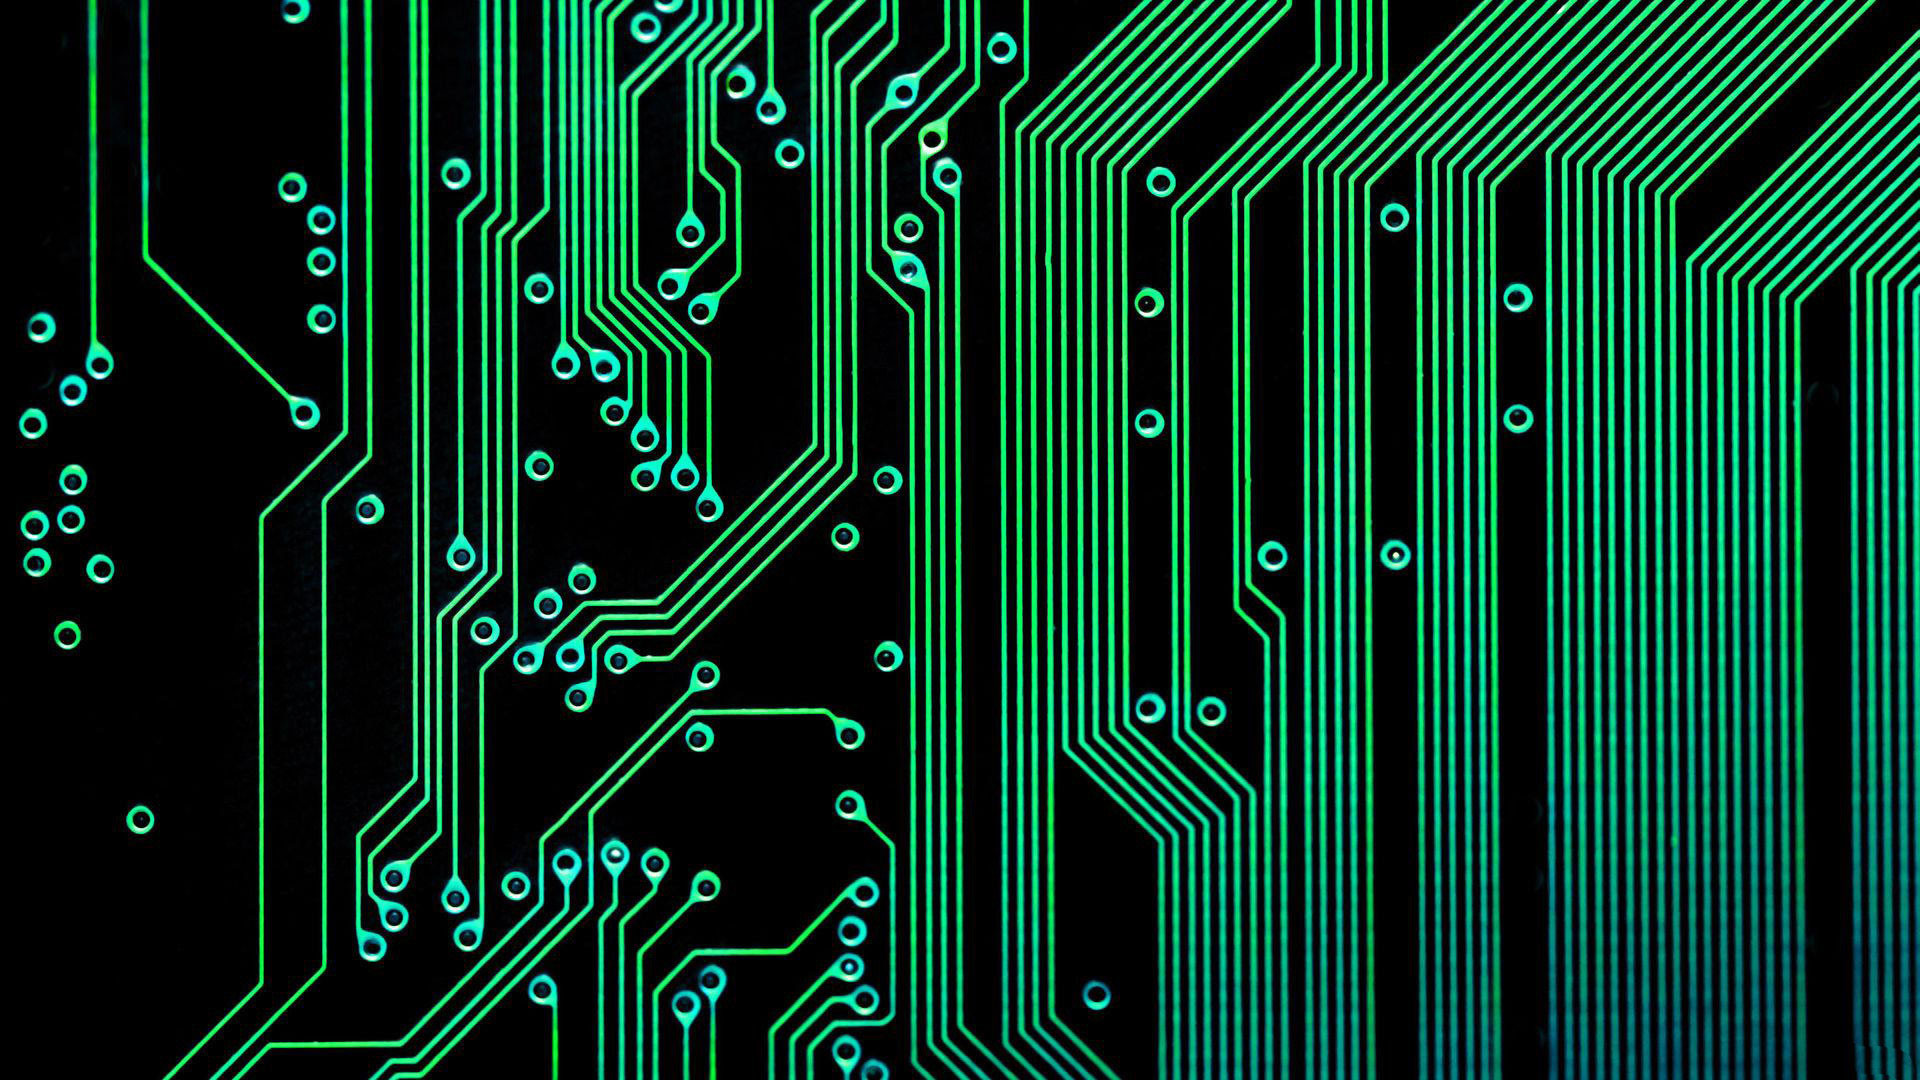 Neon Circuits Wallpaper And Background Image: Electronic Wallpaper Background (59+ Images